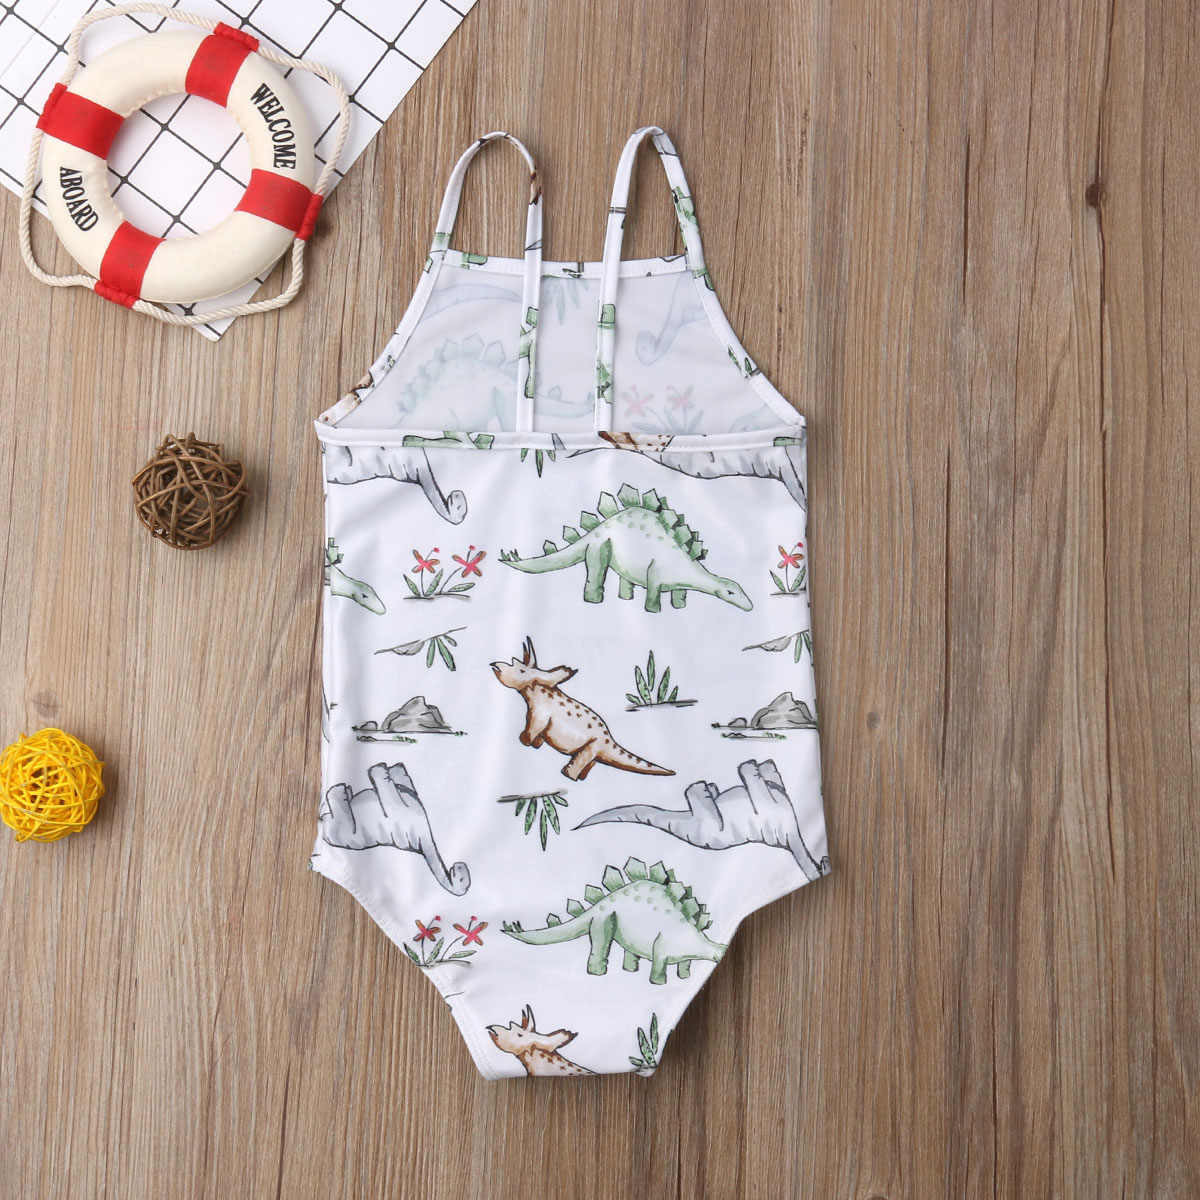 bb3e61bfcb ... Summer Lovely Newborn Kids Baby Girl Swimwear Dinosaur Printed  Bodysuits Swimsuit Bathing Suits Beachwear Outfits Clothes ...